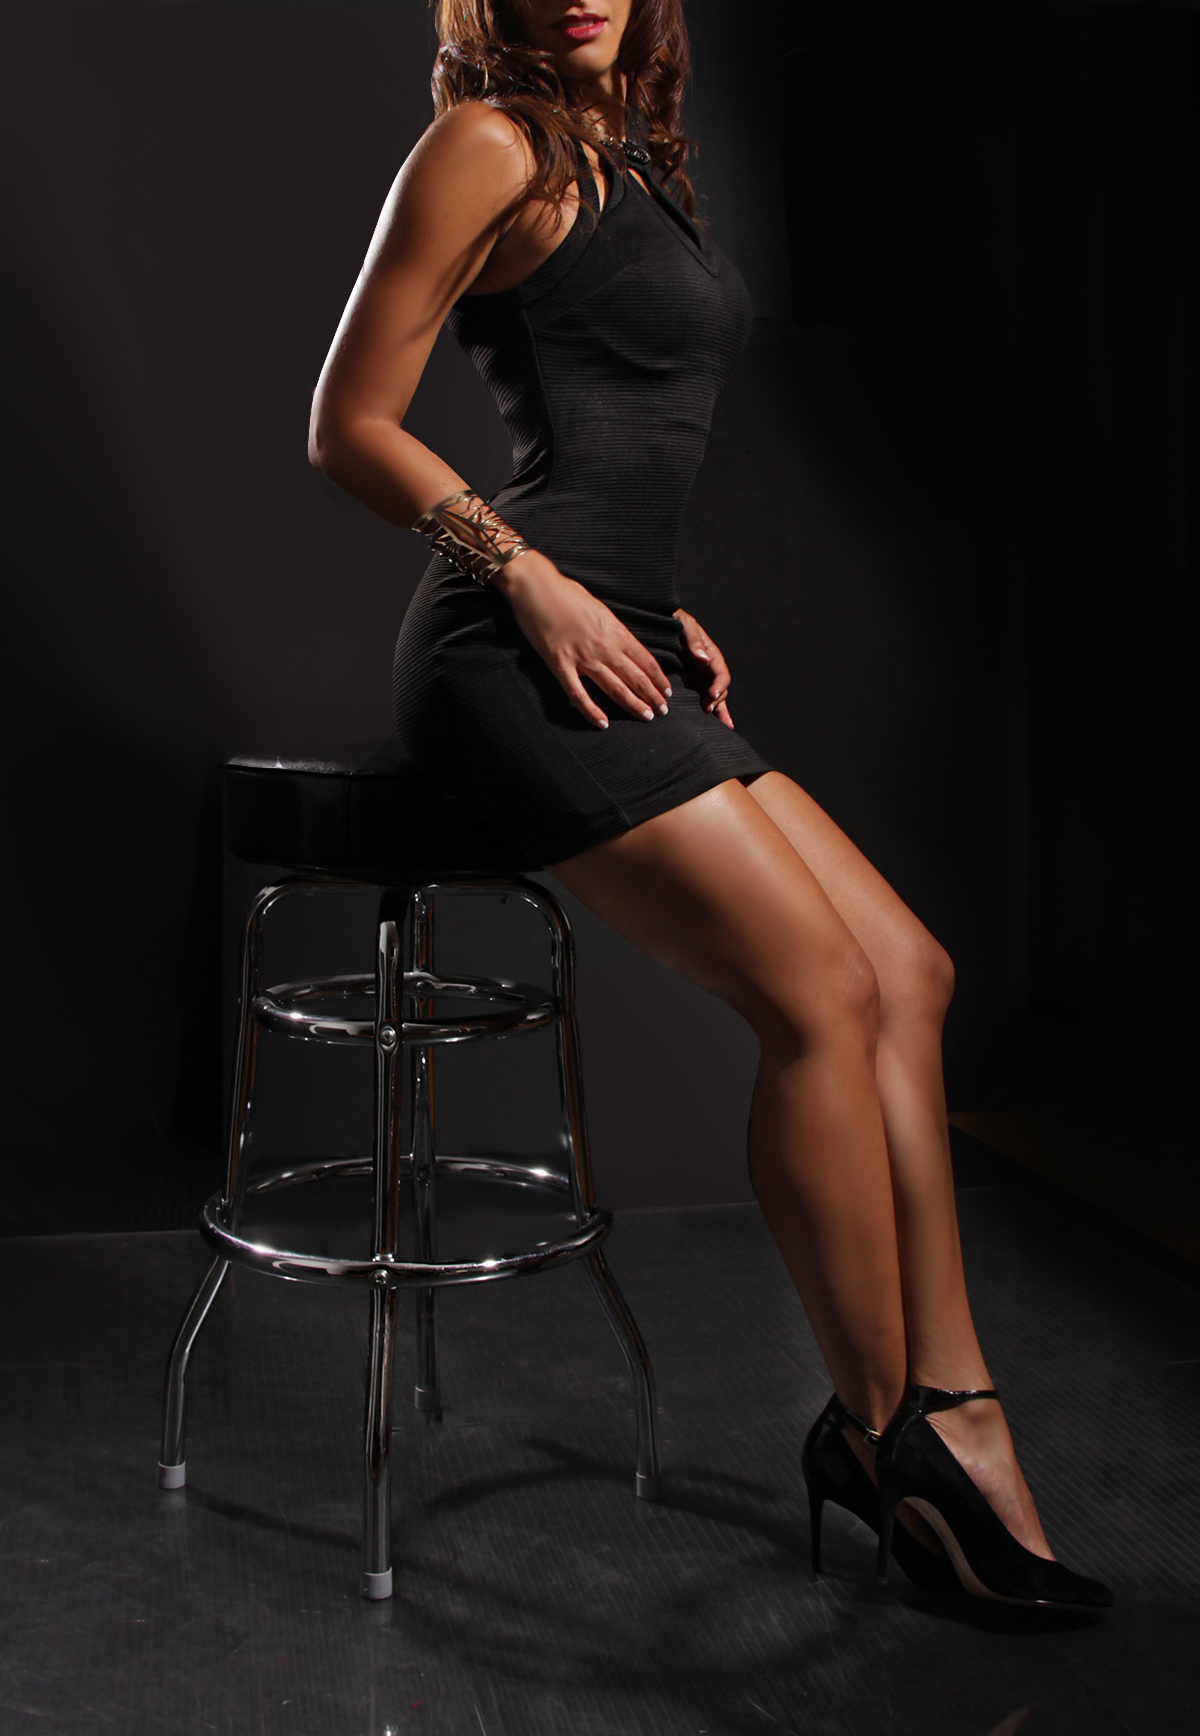 Toronto escort exotic massage spa and adult entertainment by gtagirls